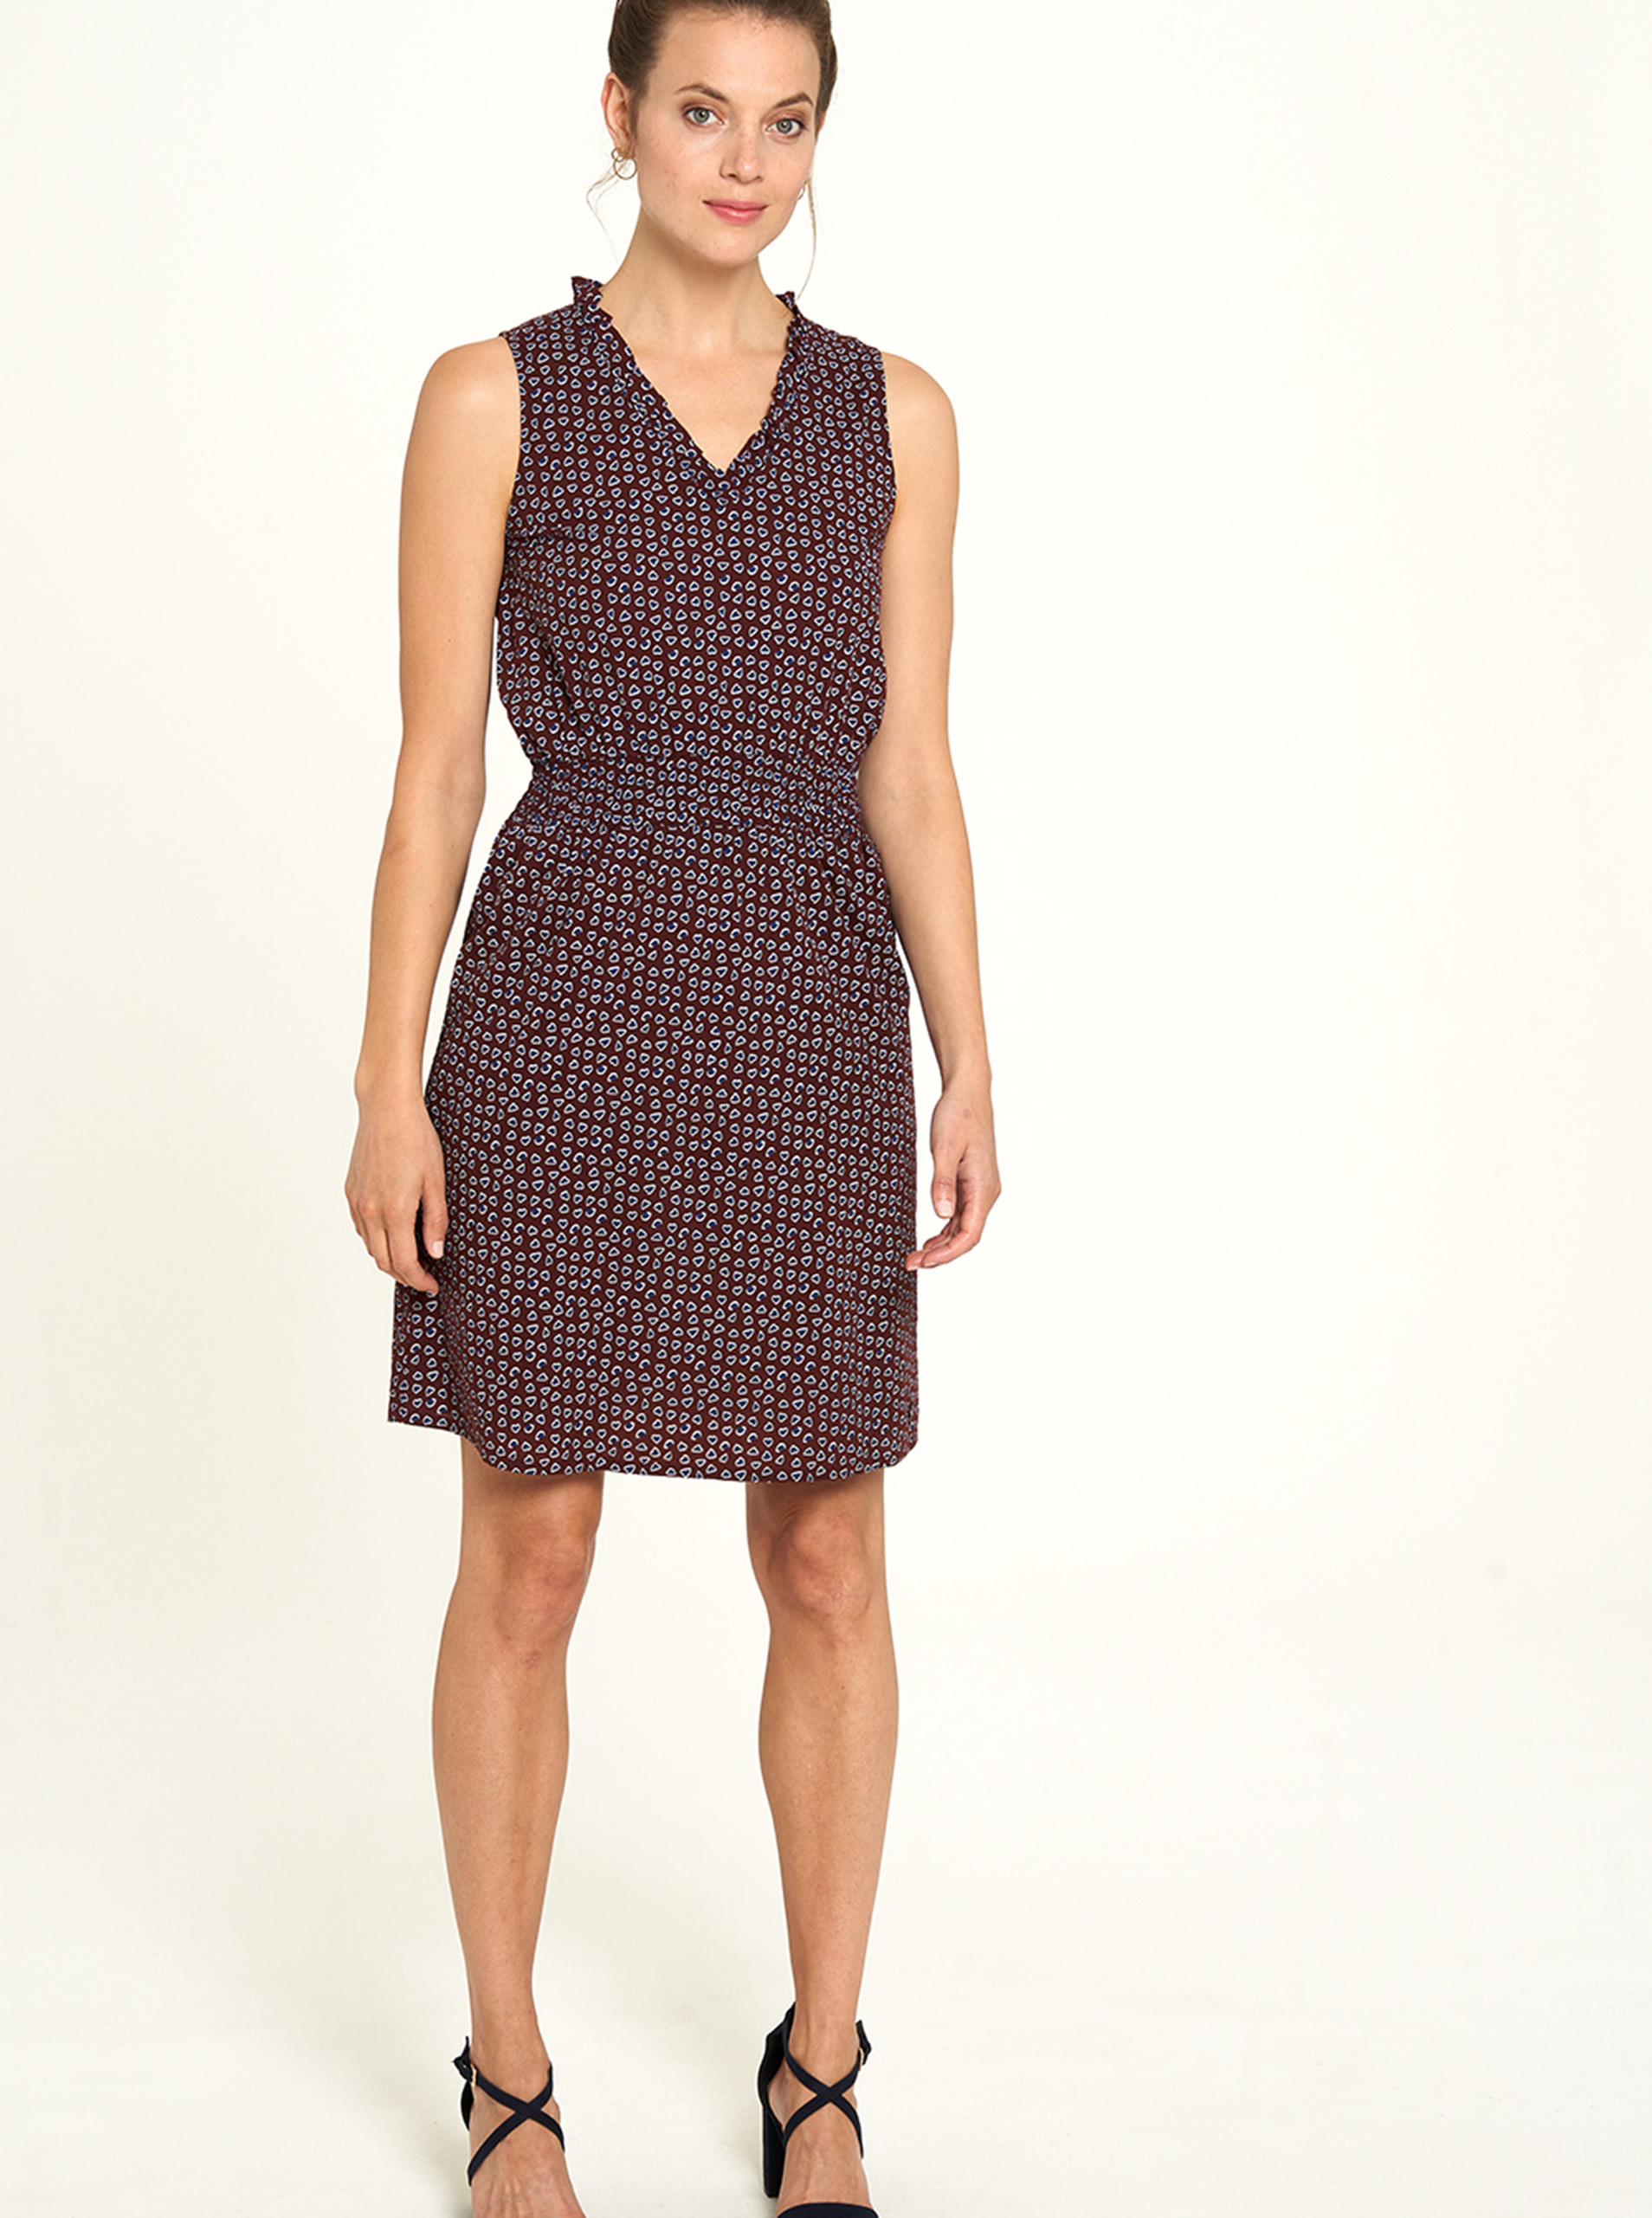 Tranquillo brown dress with small pattern